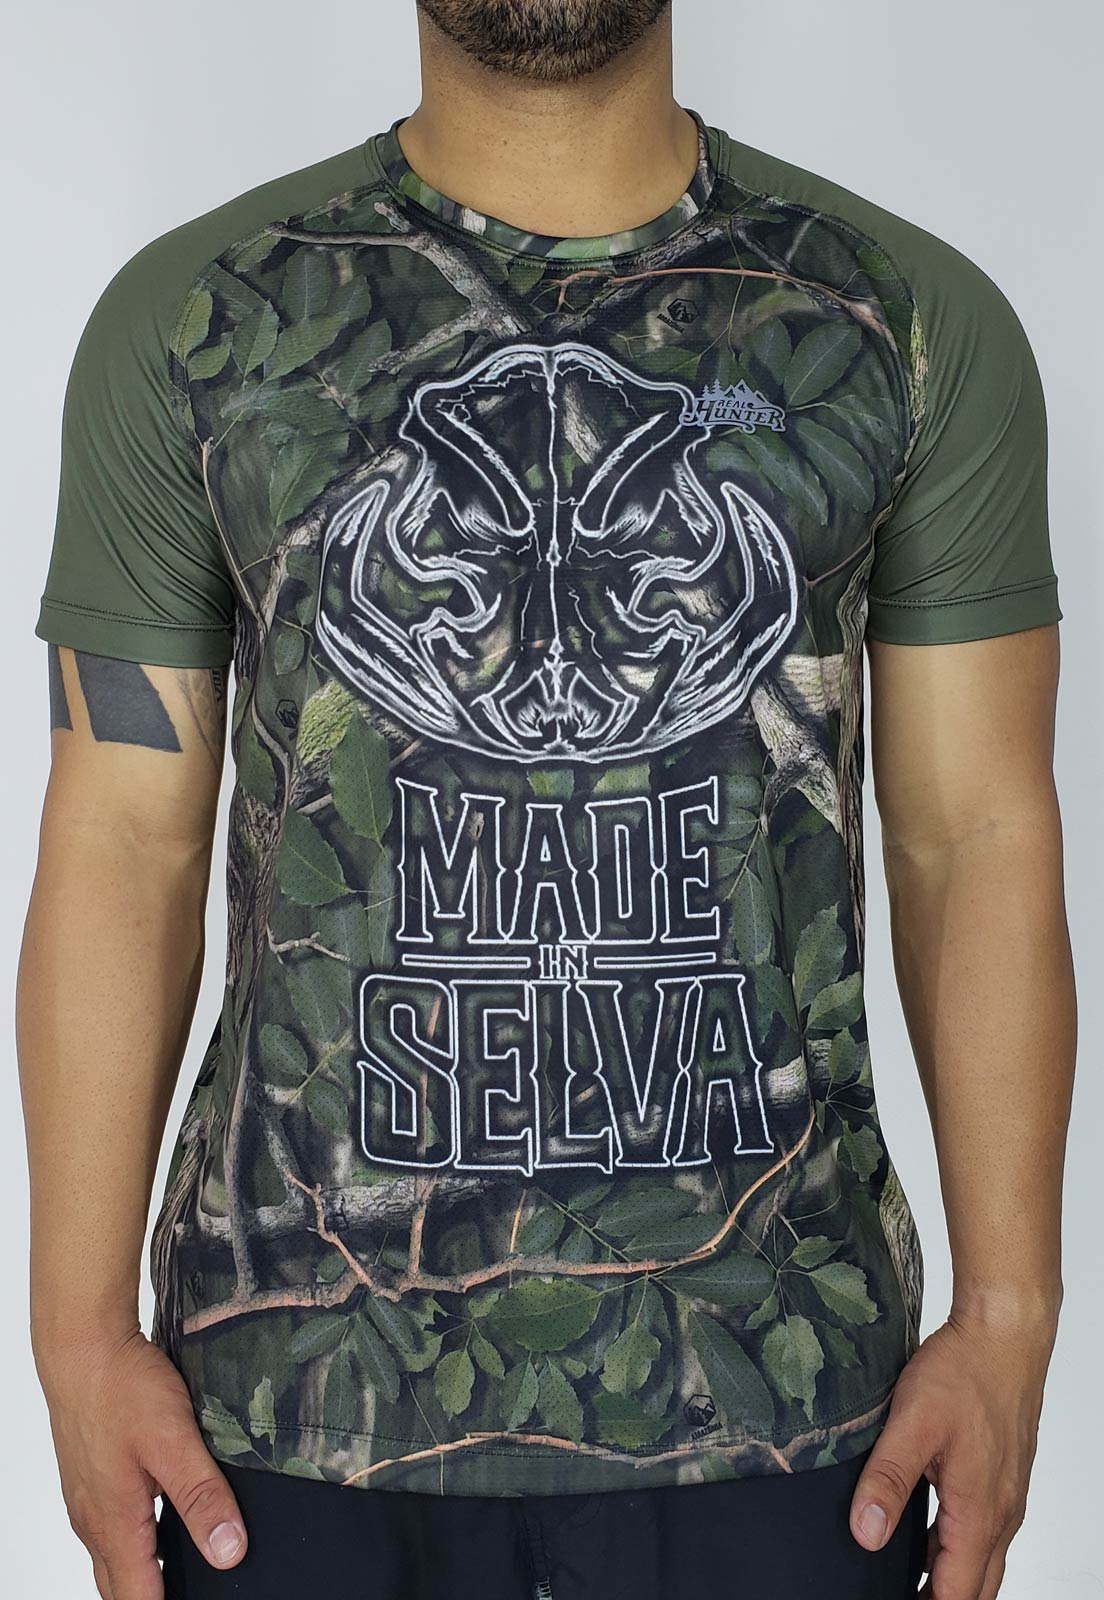 CAMISETA CAMUFLADA AMAZÔNIA JAVA HUNTER PROTEÇÃO SOLAR MANGA CURTA MASCULINA  - REAL HUNTER OUTDOORS